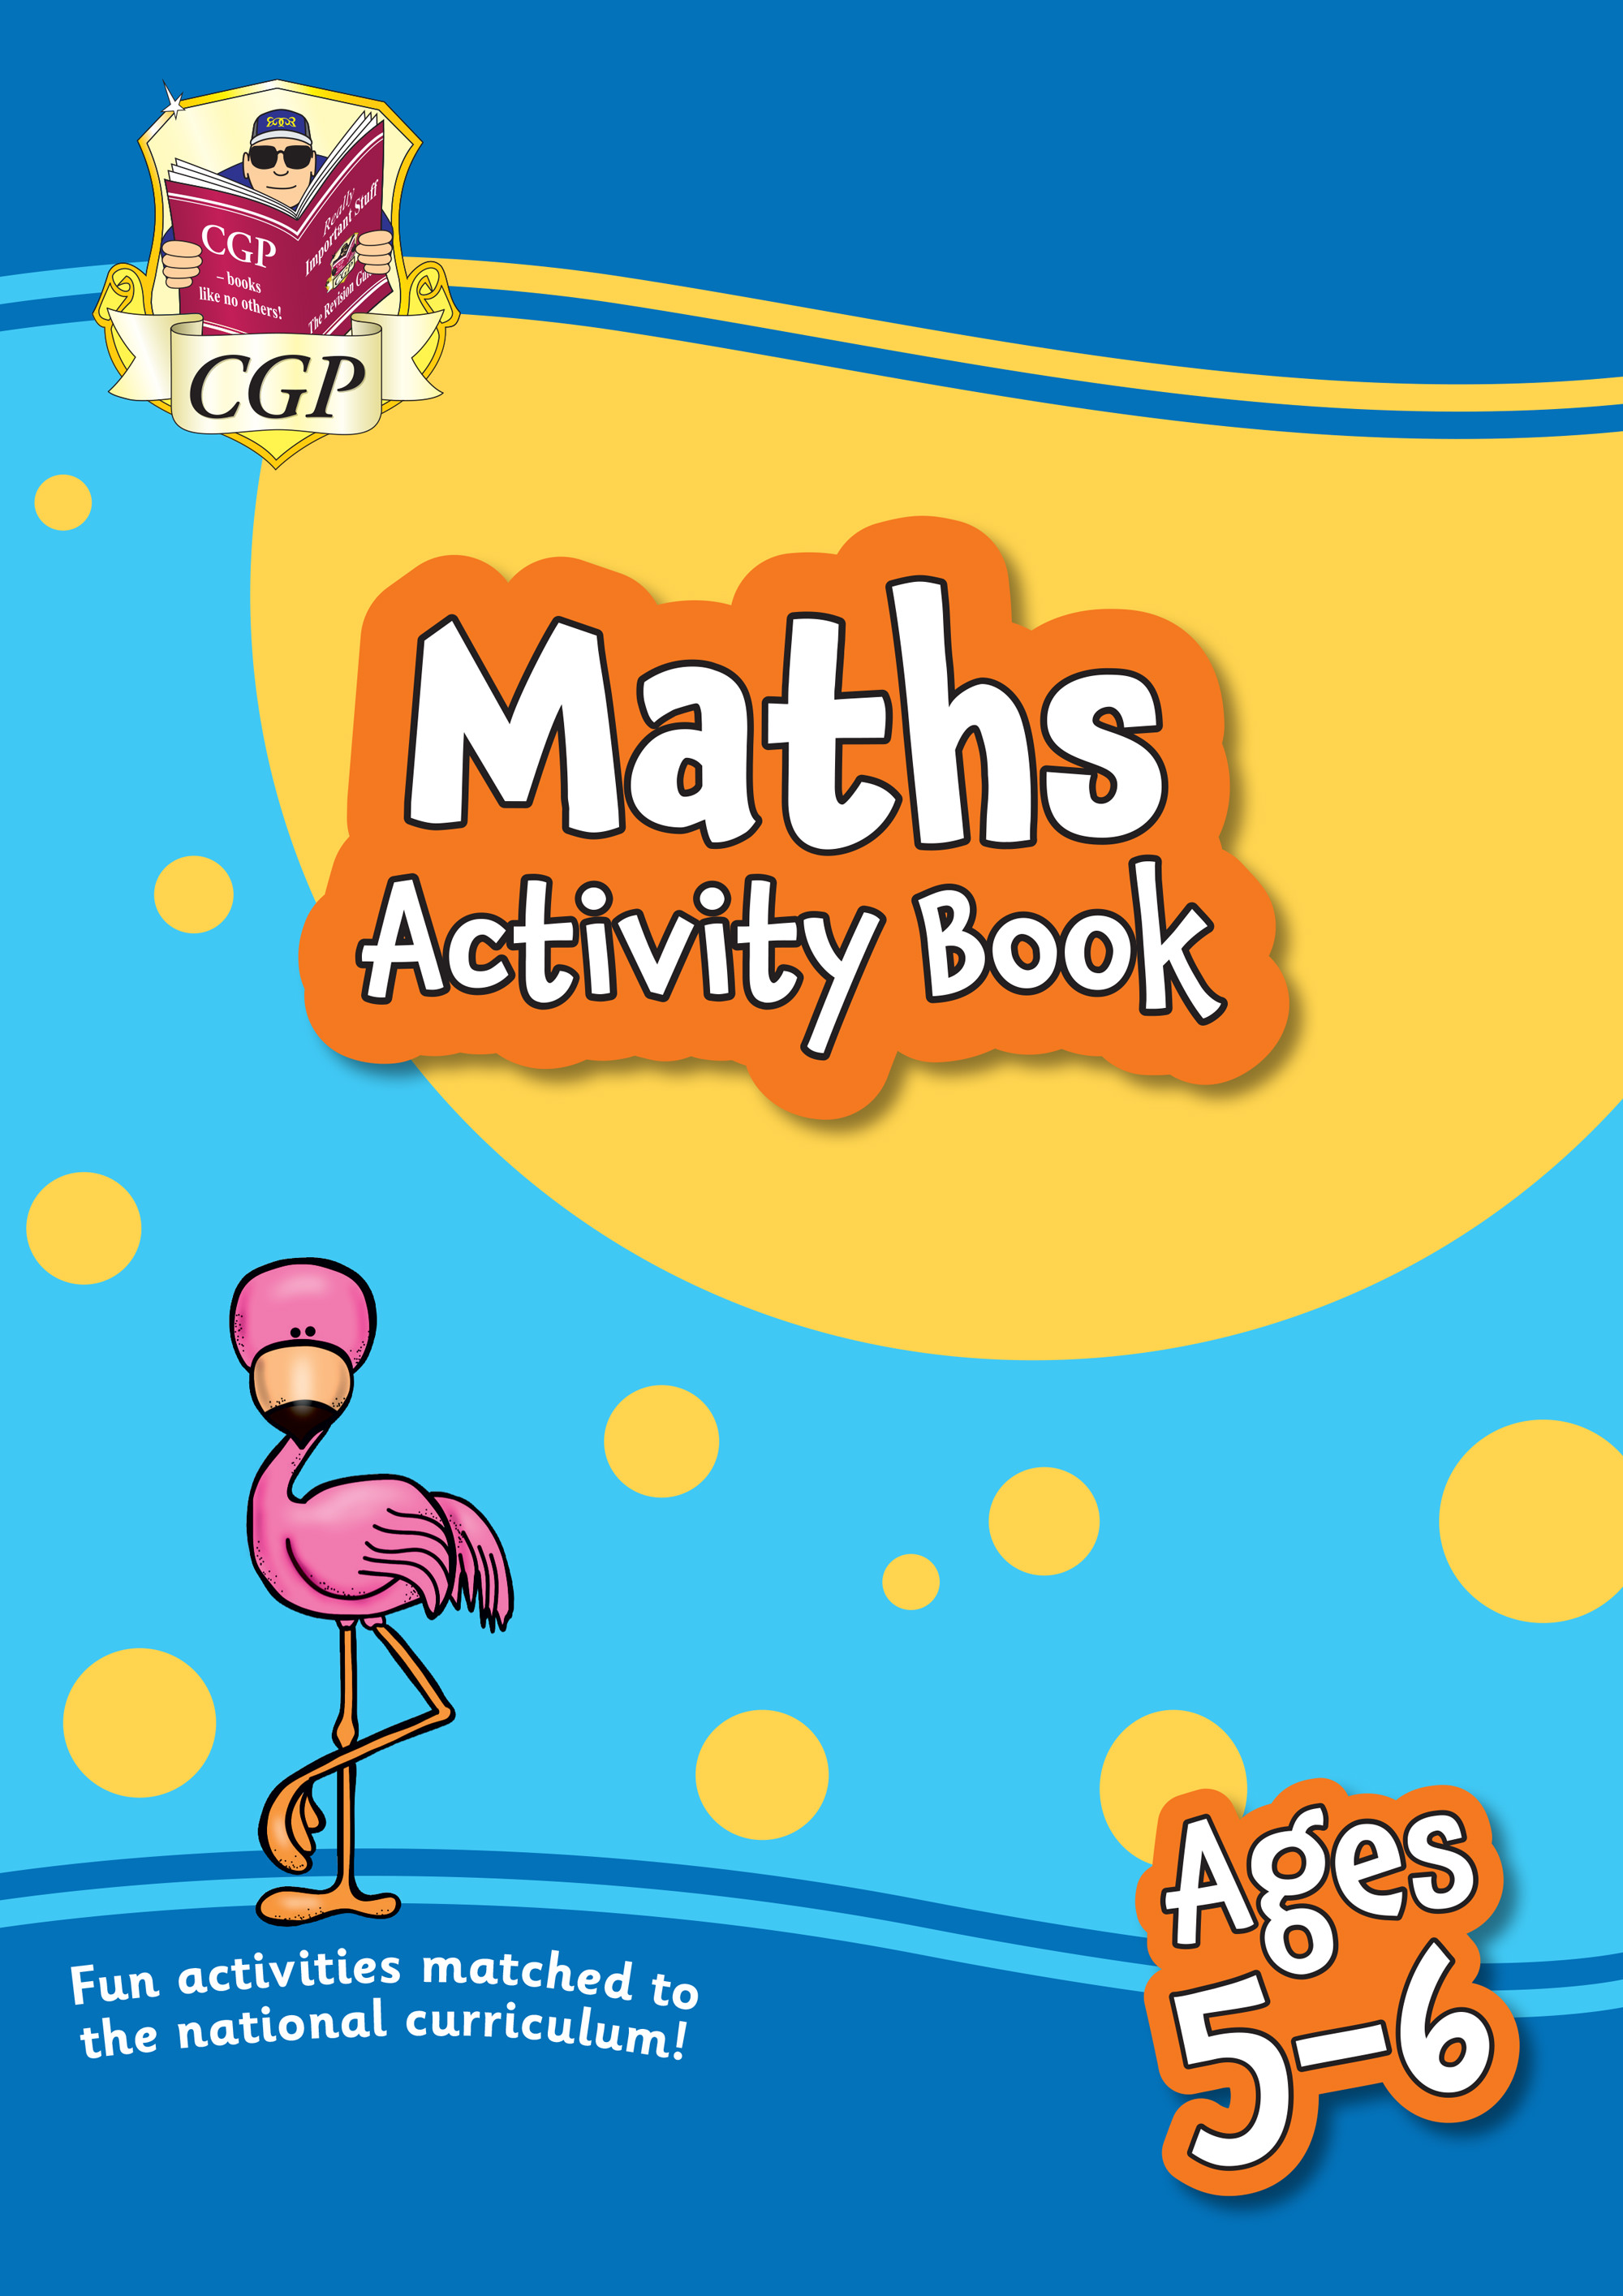 MPF1Q11 - New Maths Home Learning Activity Book for Ages 5-6